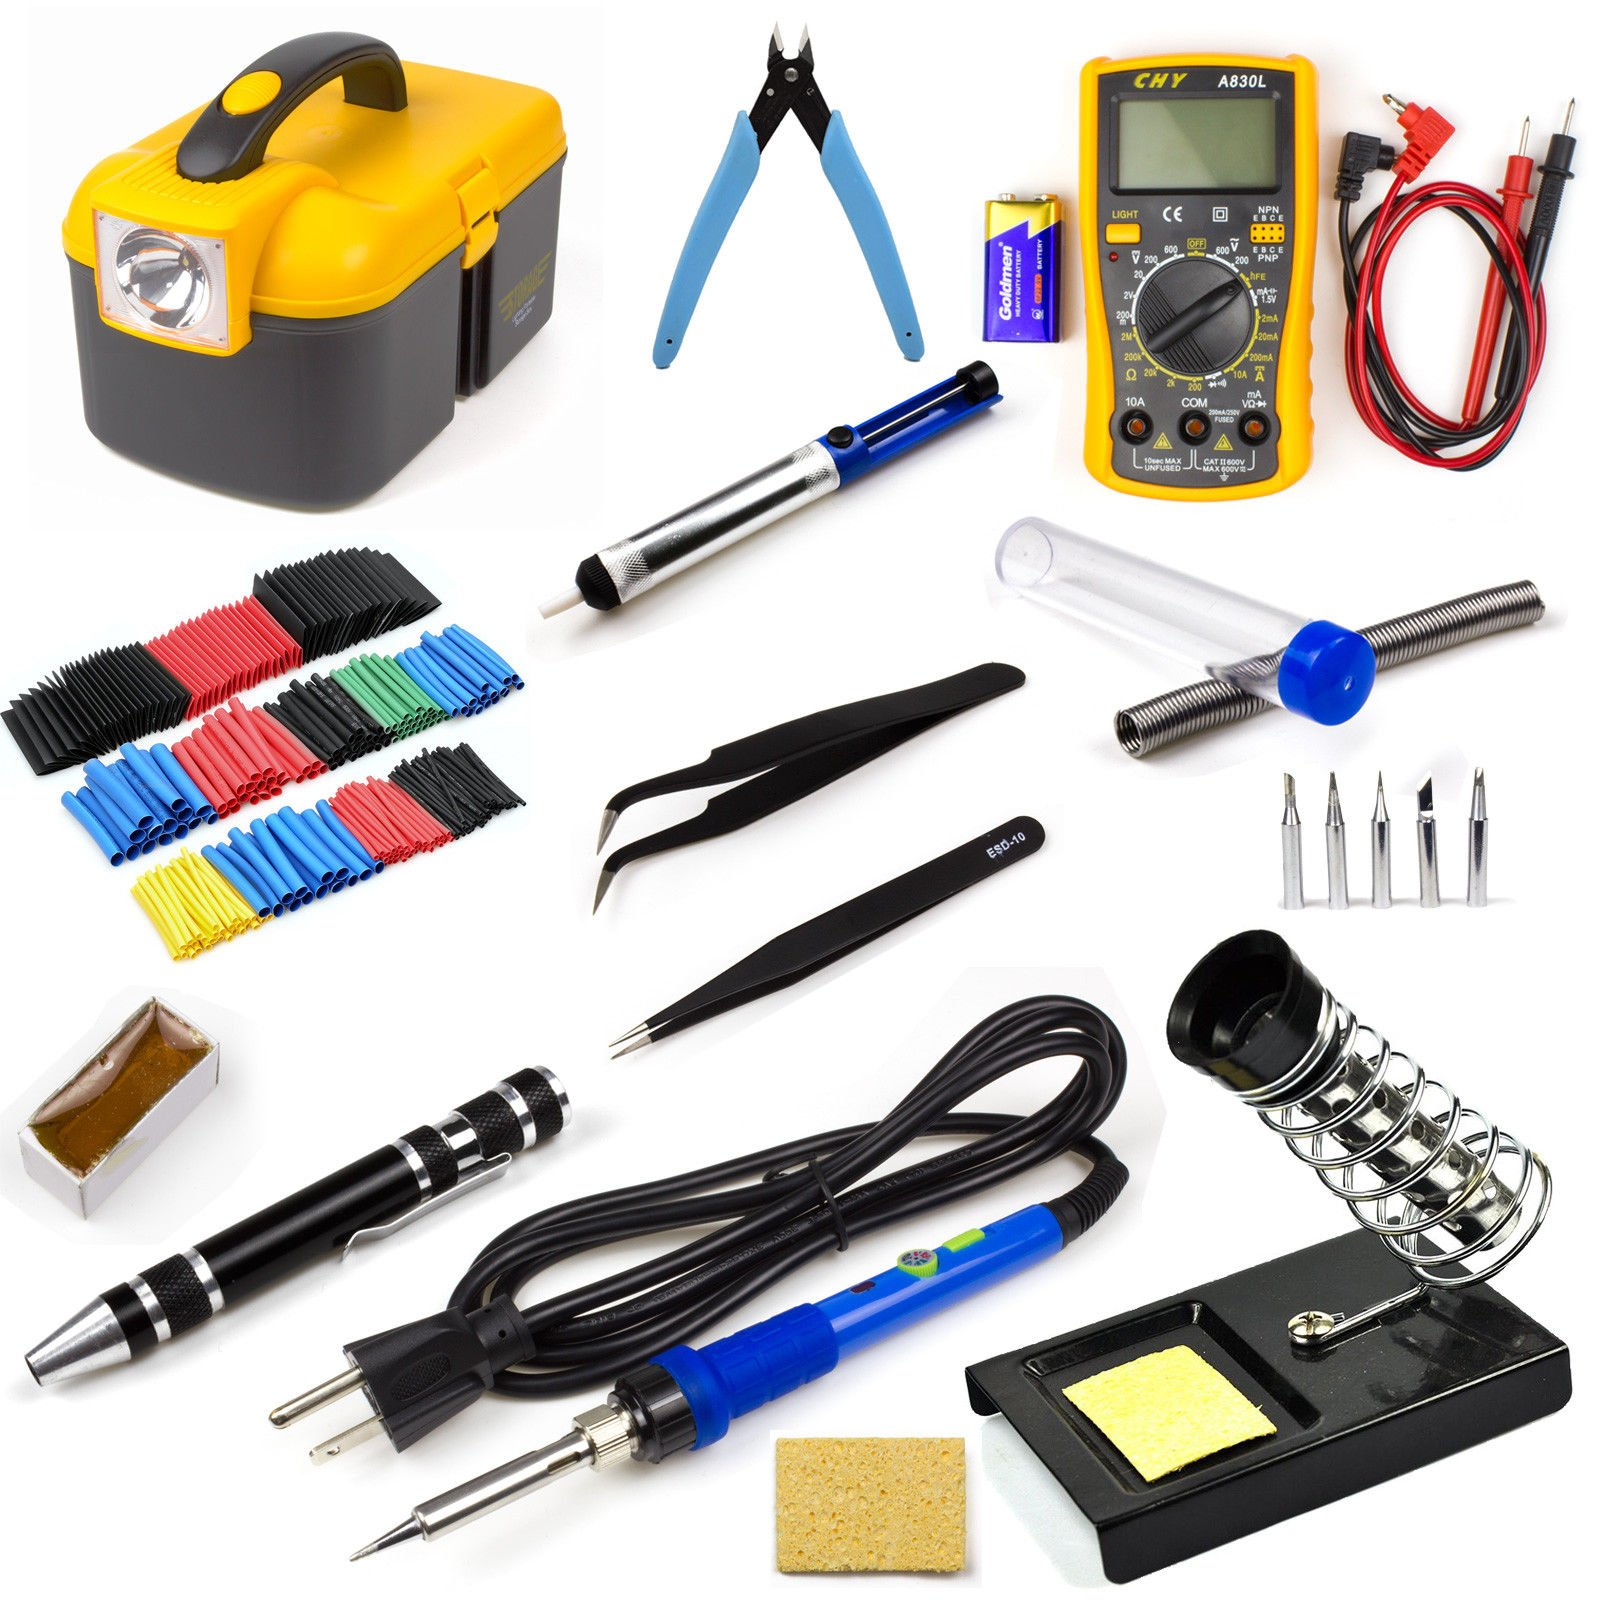 Ziss Soldering Iron Tool Kit Electronics Adjustable Temperature Welding Tool With 5pcs Soldering Tips and 328pcs Heat Shrinkable Tube by Ziss (Image #8)